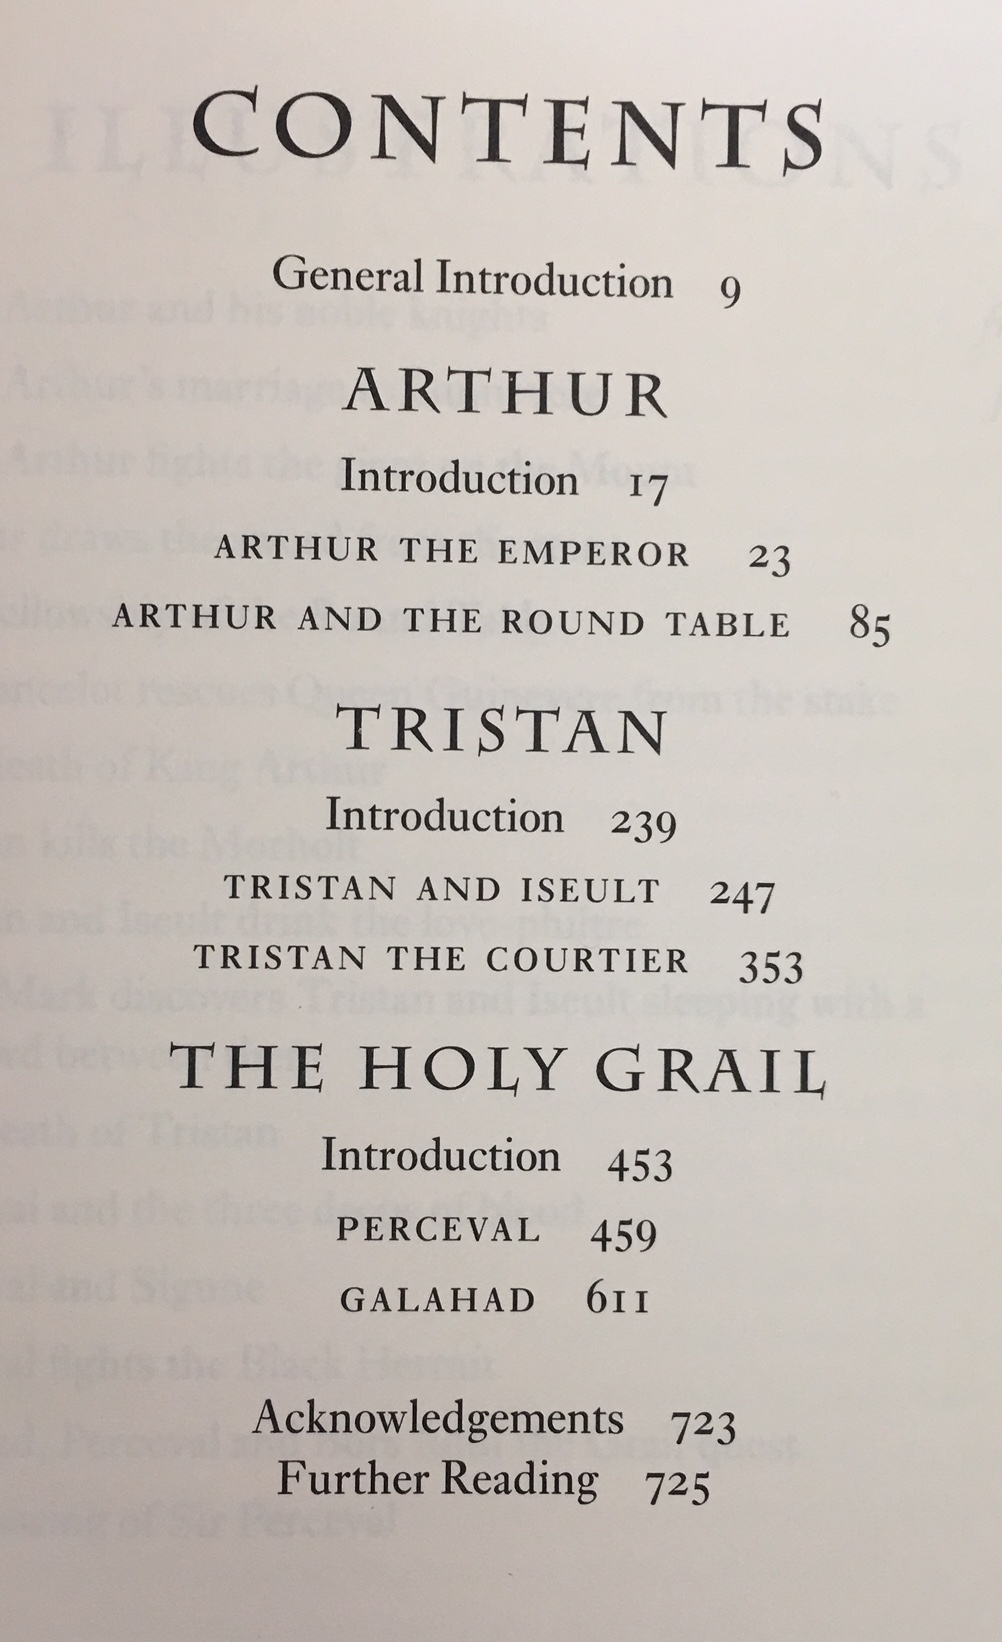 Image for Legends of King Arthur  (3 Books Bound in One Volume)  - Arthur / Tristran / The Holy Grail